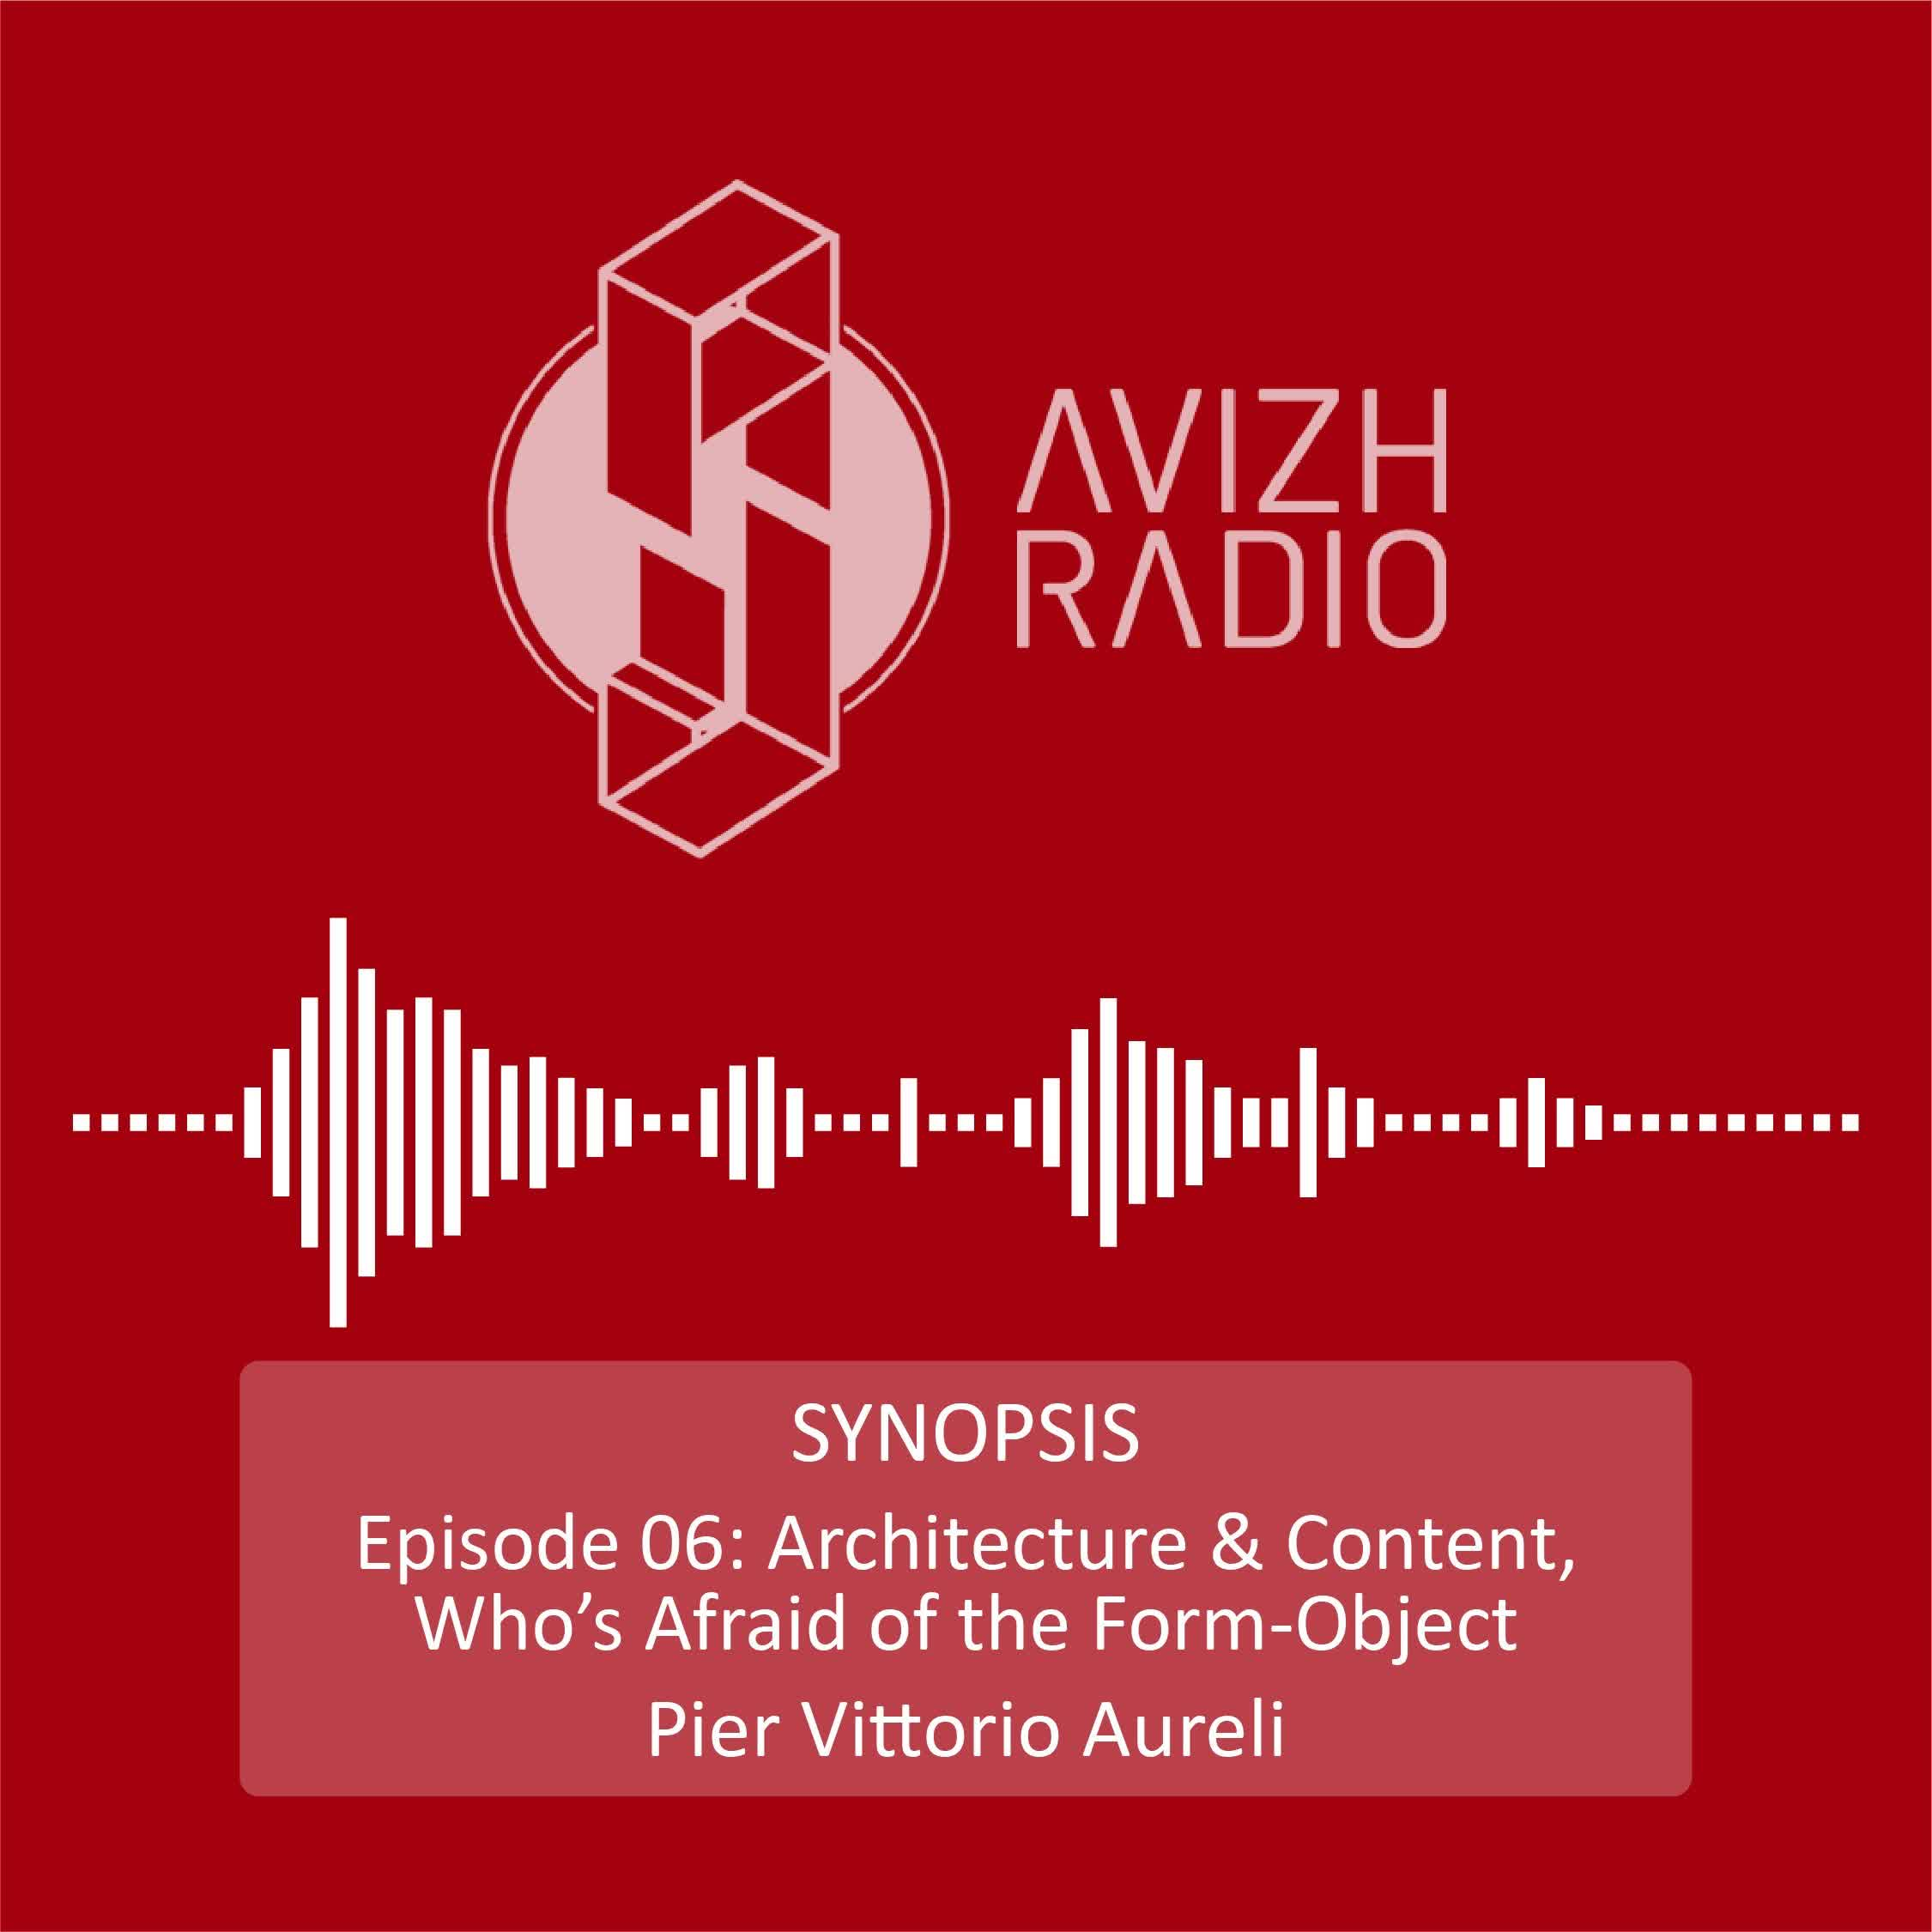 Avizh Radio - SYNOPSIS-Episode 06 - Architecture and content - who is afraid of the form-object - Pier Vitorio Aureli